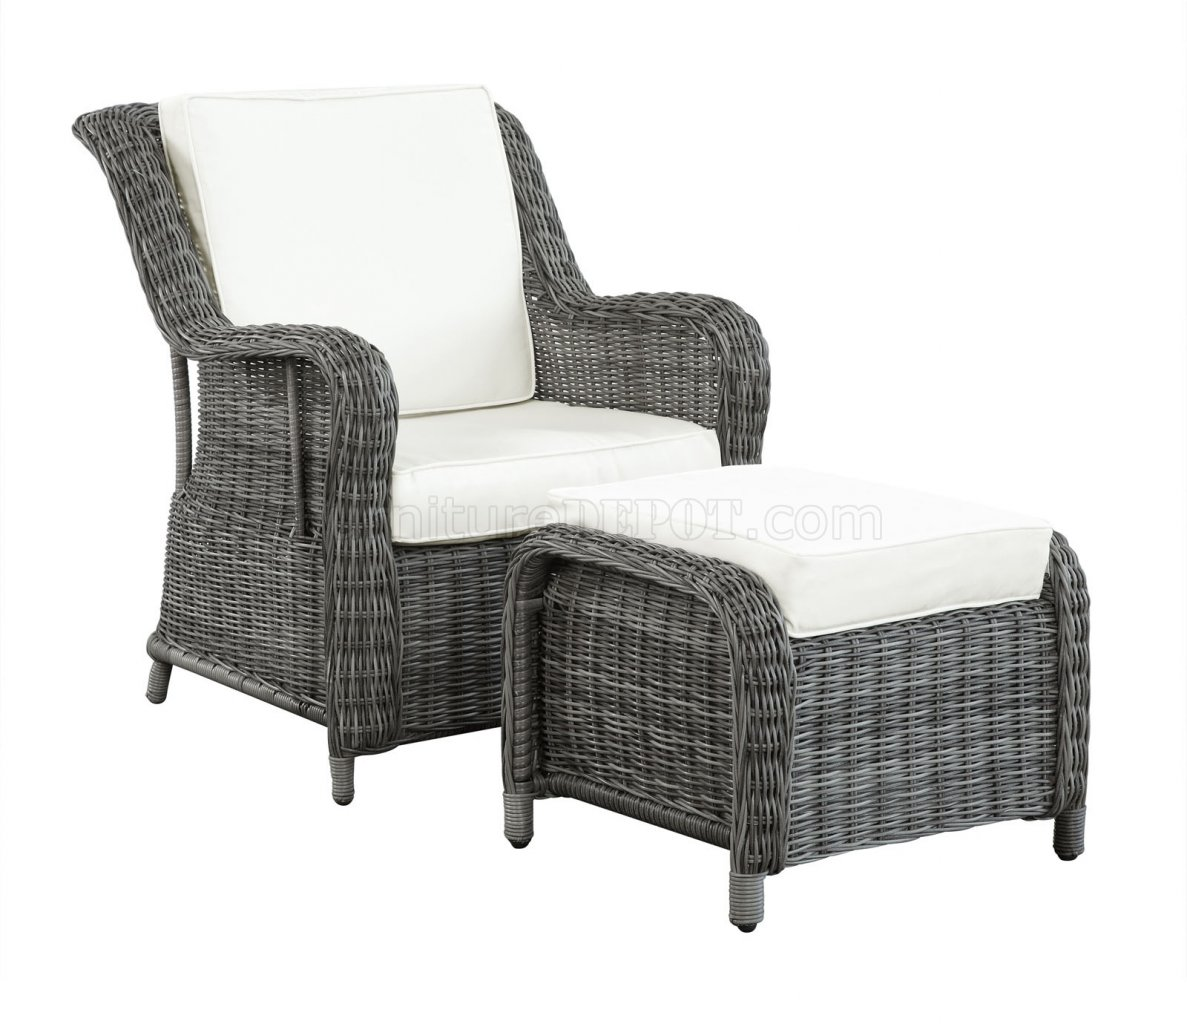 Patio Chairs With Ottoman Du Jour Outdoor Patio Chair And Ottoman In Gray White By Modway